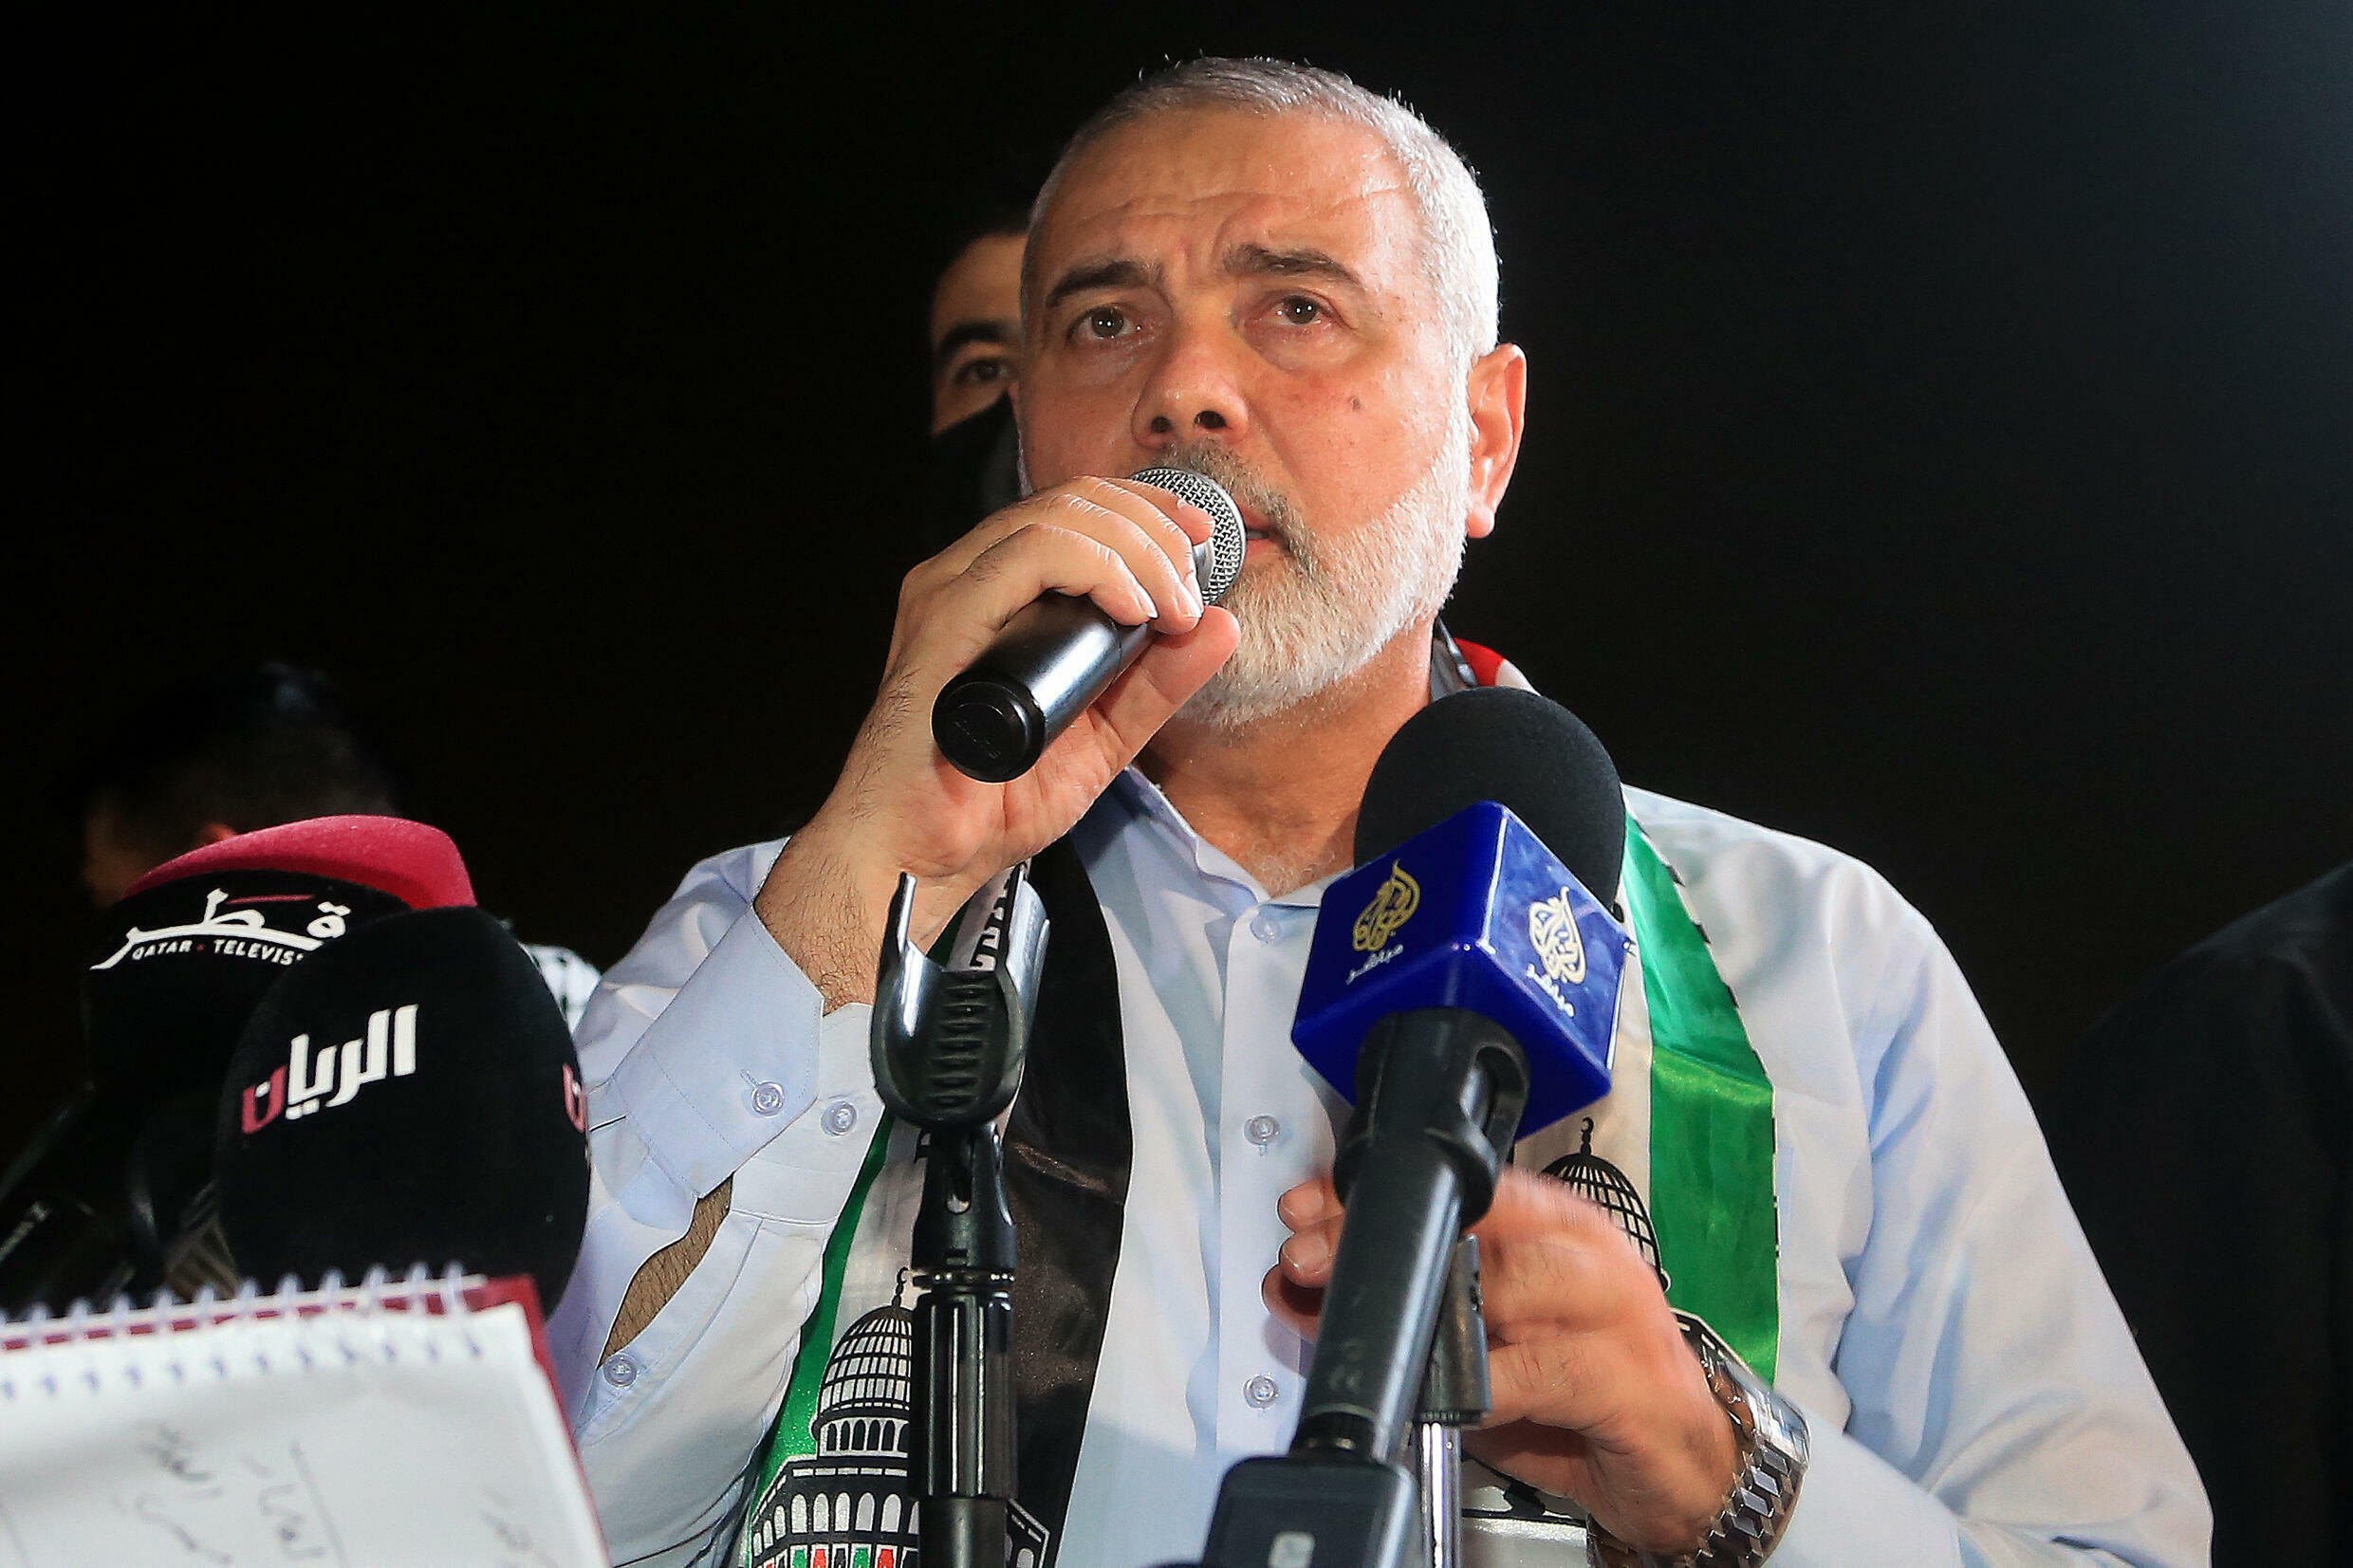 Hamas has confirmed the unopposed re-election of its leader Ismail Haniyeh as head of the Palestinian Islamist movement